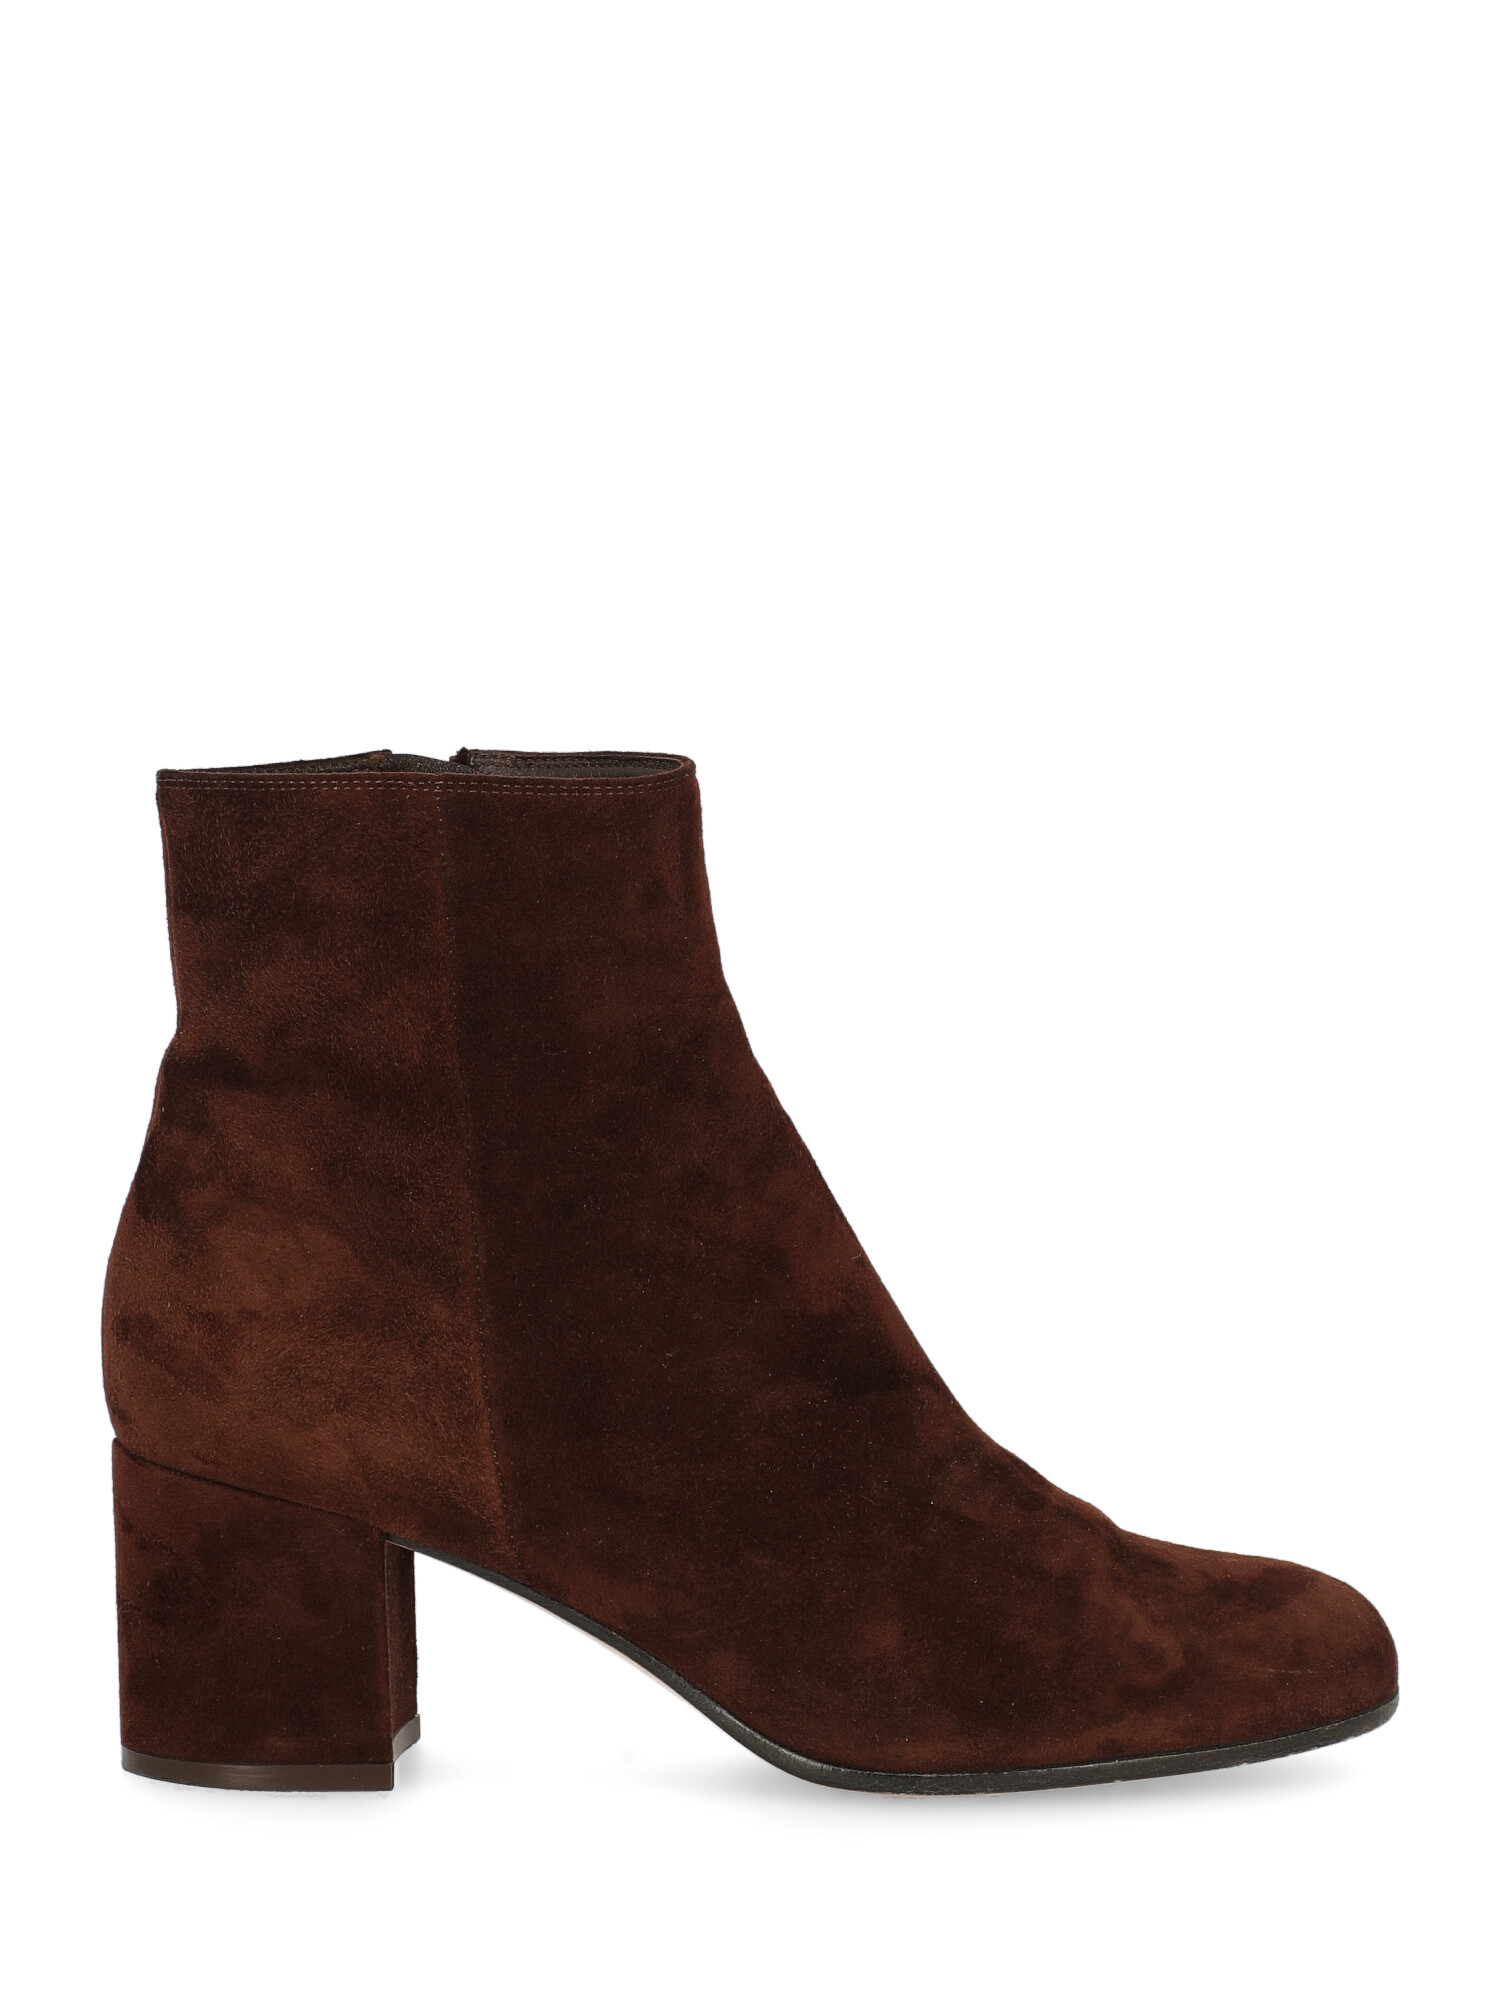 Pre-owned Gianvito Rossi Shoe In Brown